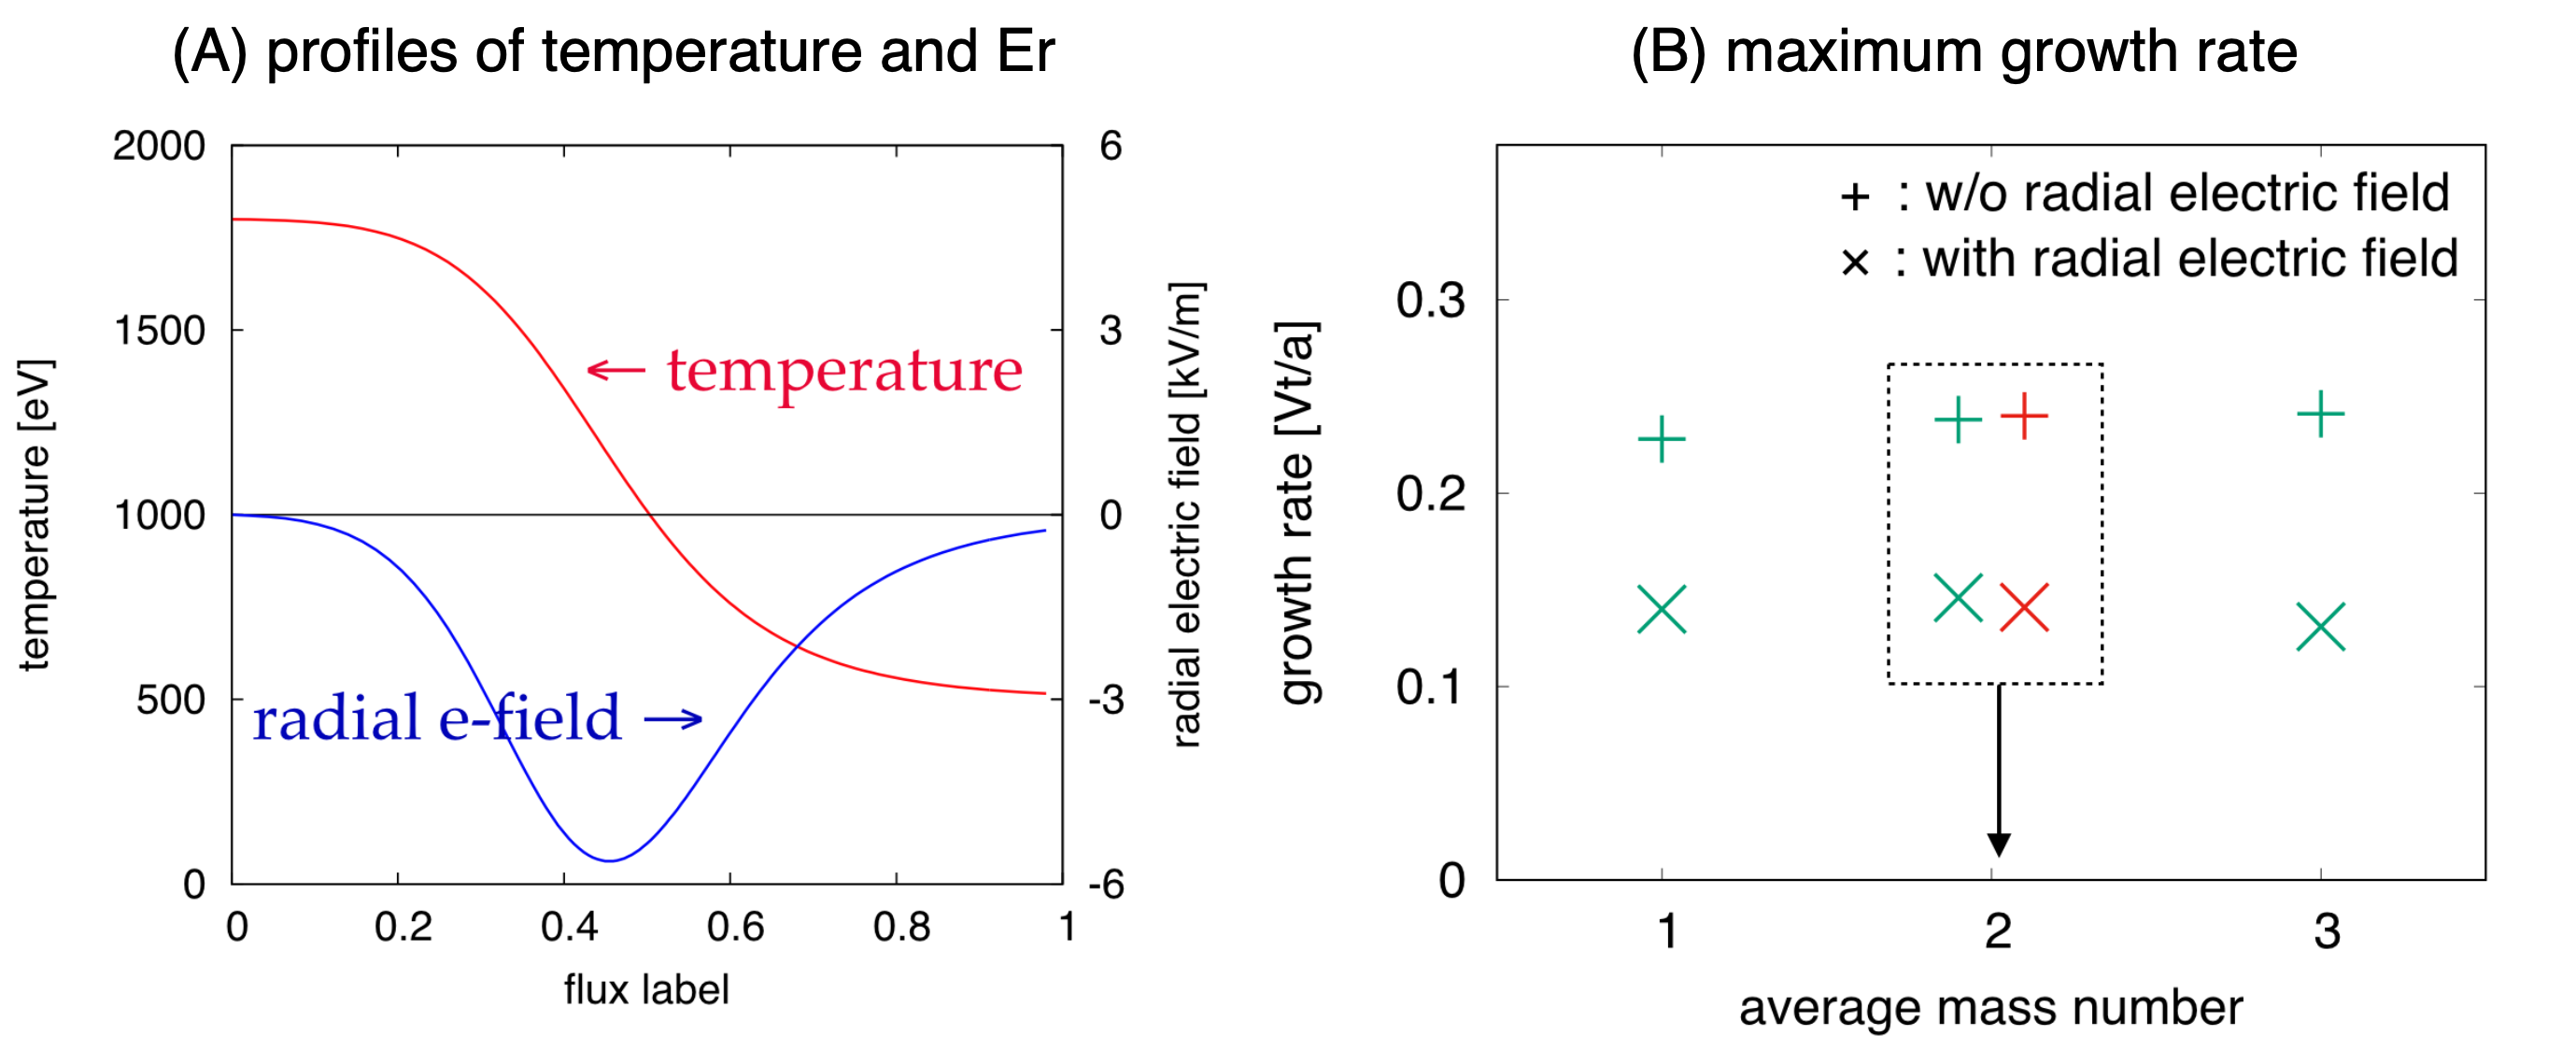 (A) Temperature (red) and radial electric field (blue) profiles employed in the simulations. (B) Maximum growth rate normalized to $V_{ti}/a$ as a function of average mass number in the absence of $E_{r}$ ($+$) and the presence of $E_{r}$ ($\times$). The green and red points, respectively, denote the growth rate in single- and multi-component plasmas.